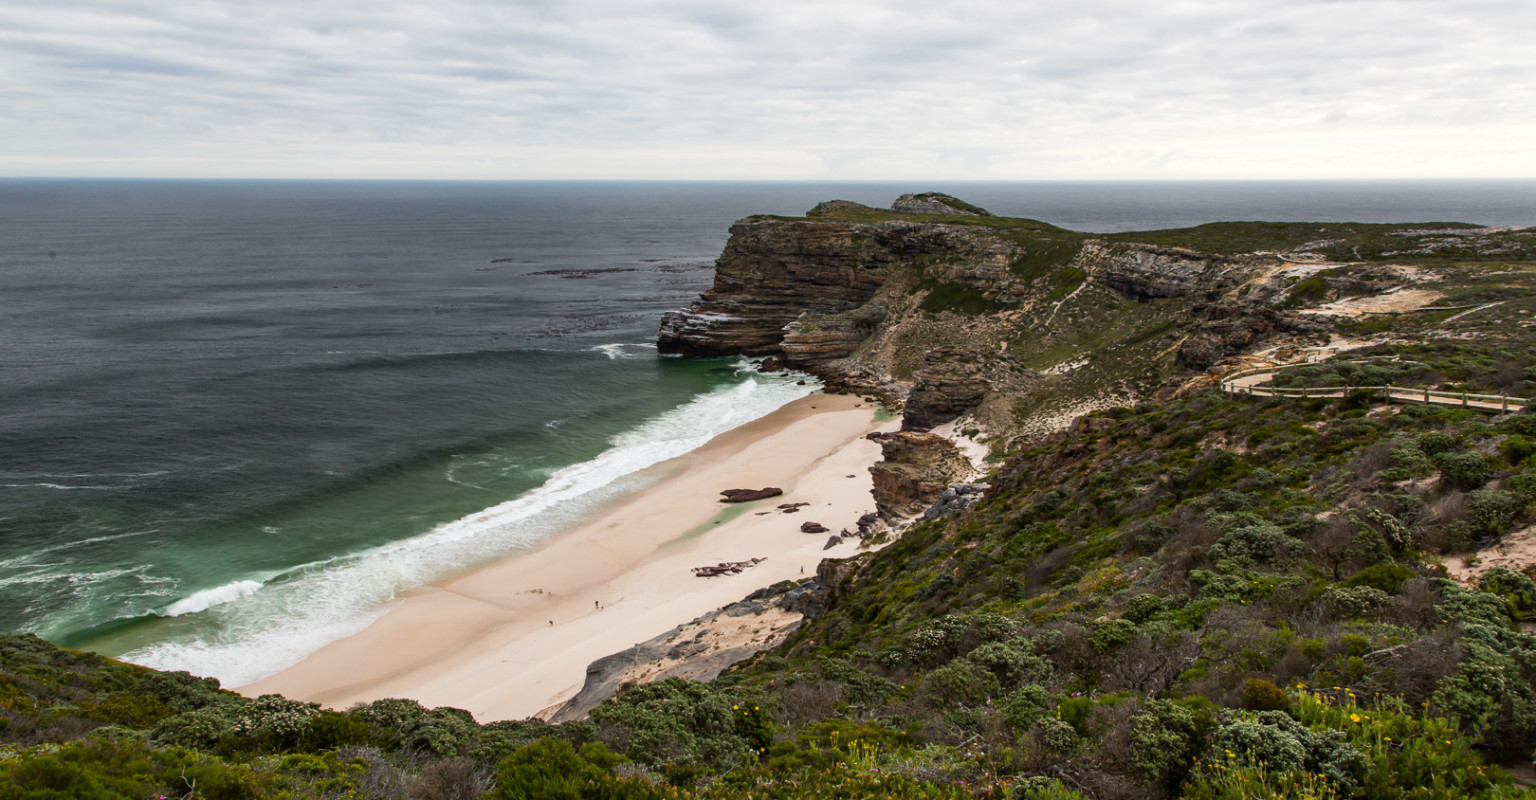 29.10. Cape Tour: Cape of Good Hope, Dias Beach